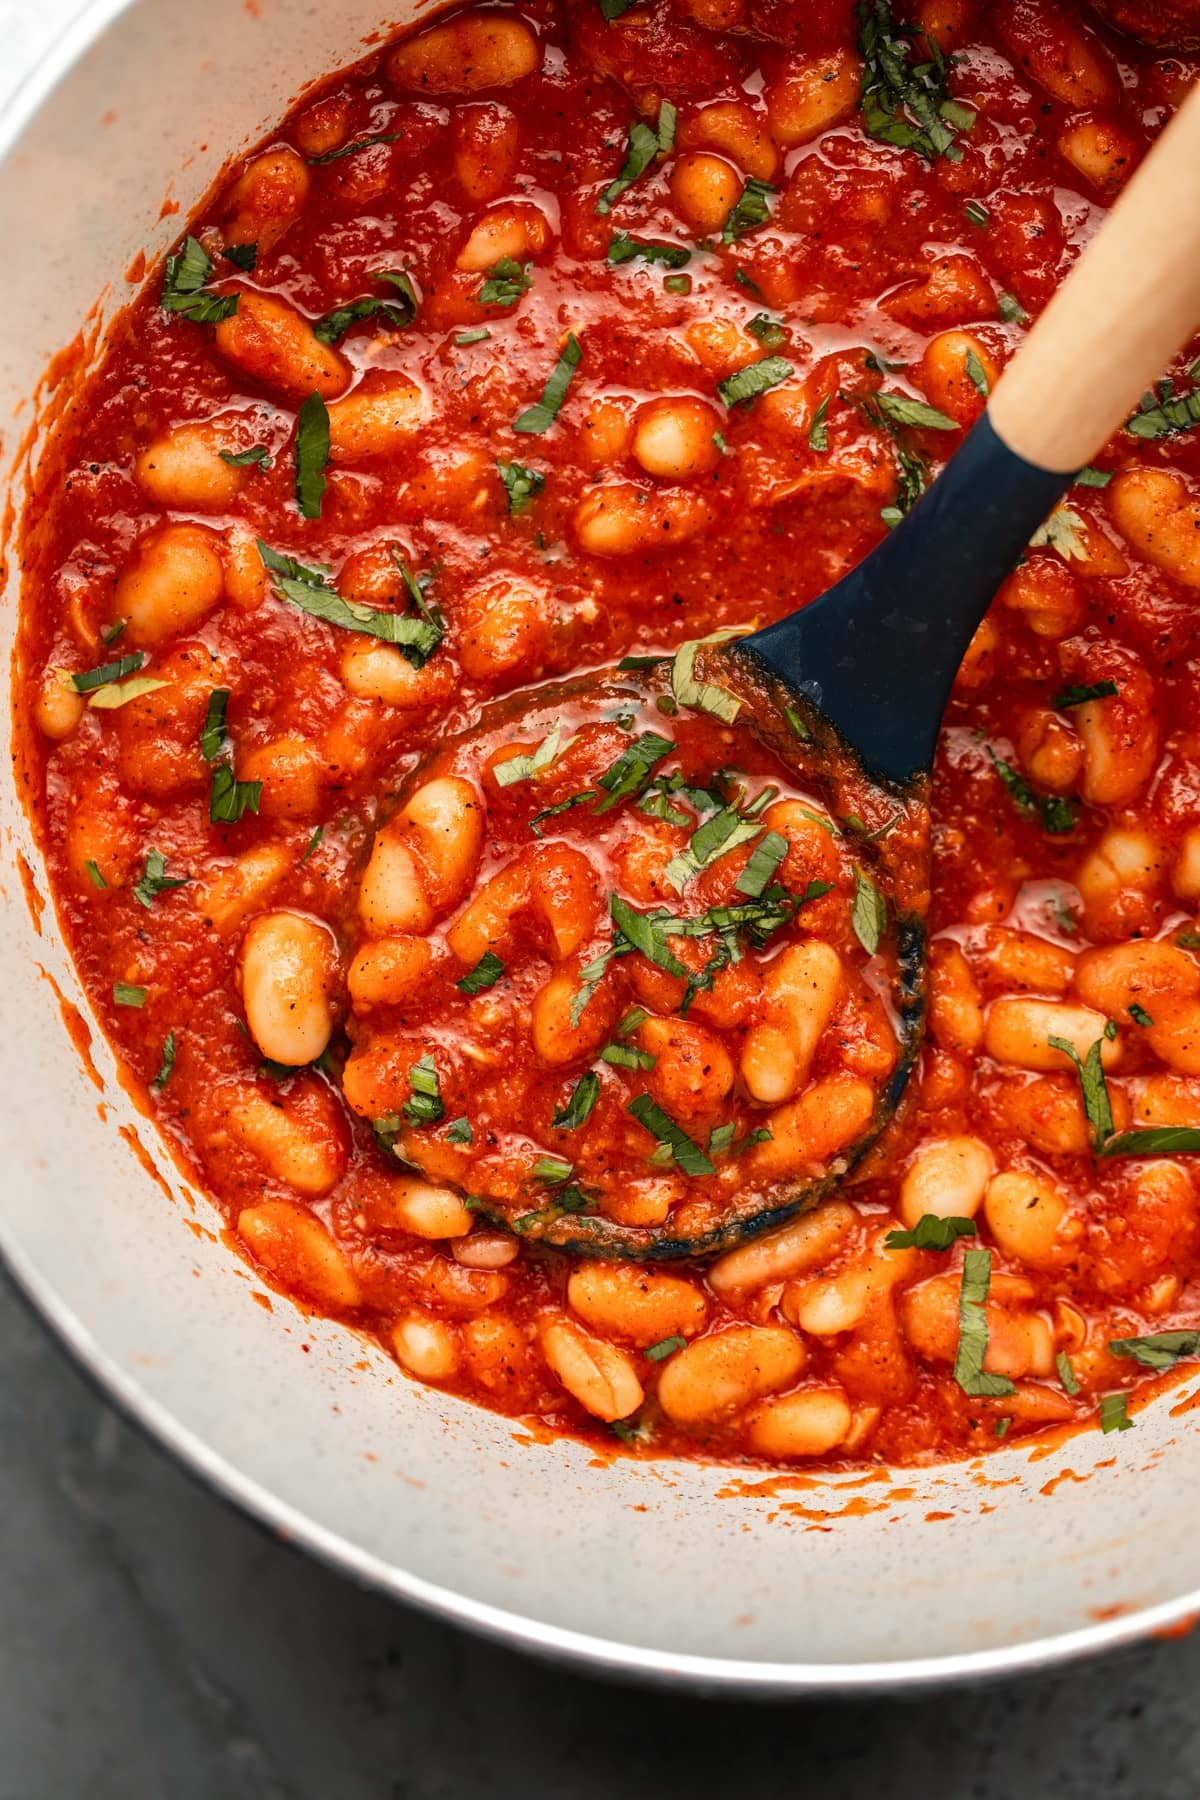 white pot of sweet & smoky white beans in red sauce garnished with chopped parsley